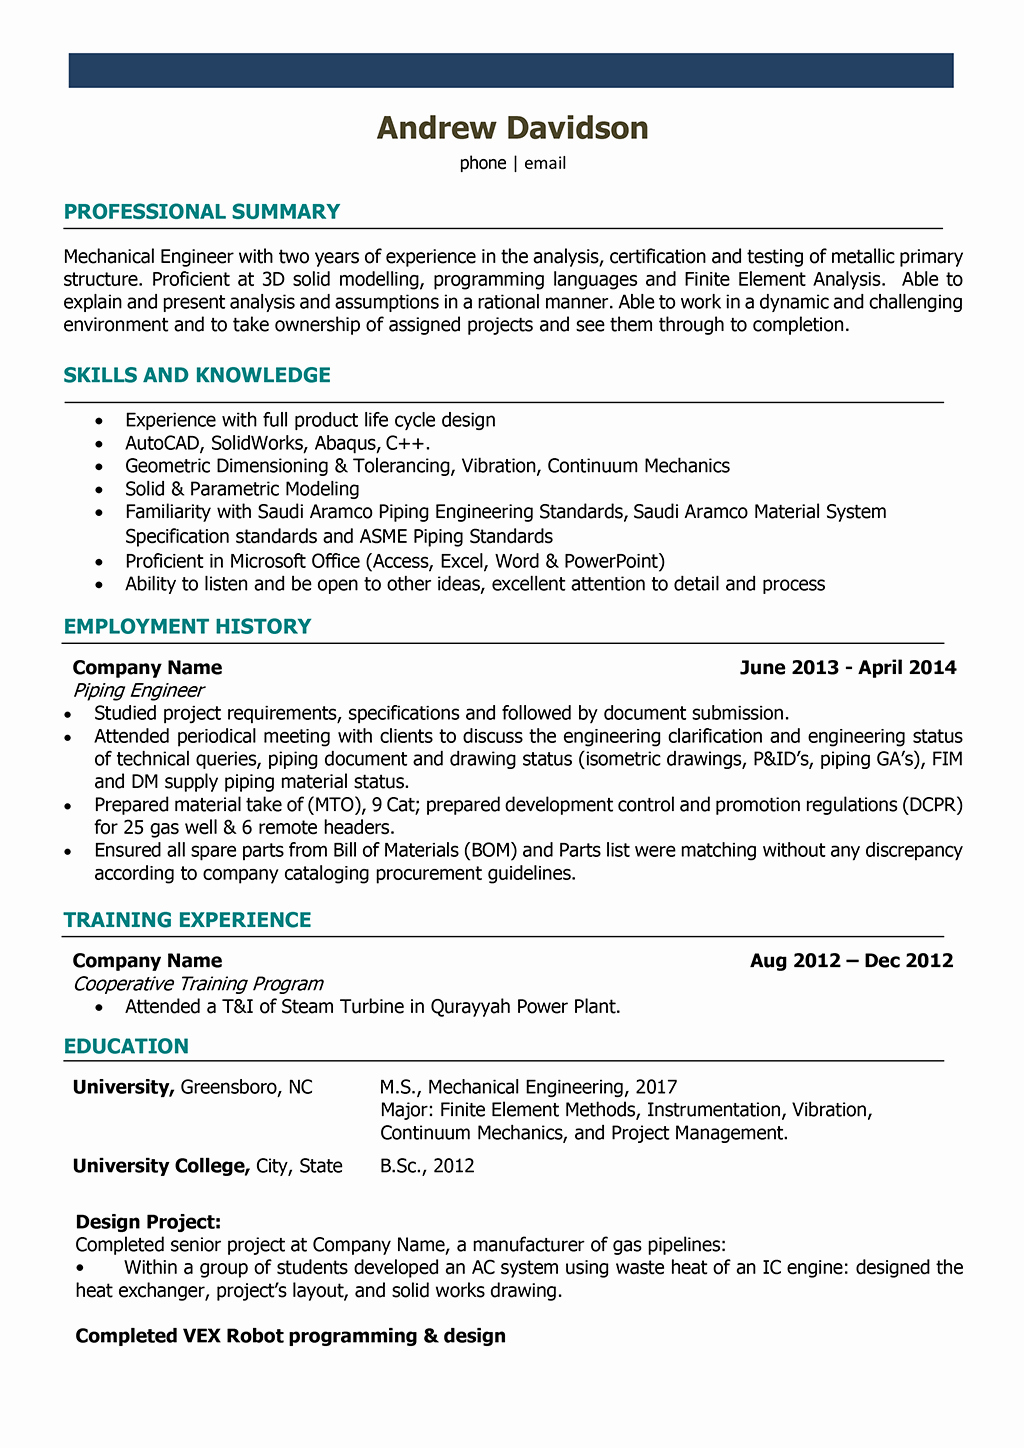 Mechanical Engineering Resume Examples Beautiful Mechanical Engineer Resume Samples and Writing Guide [10